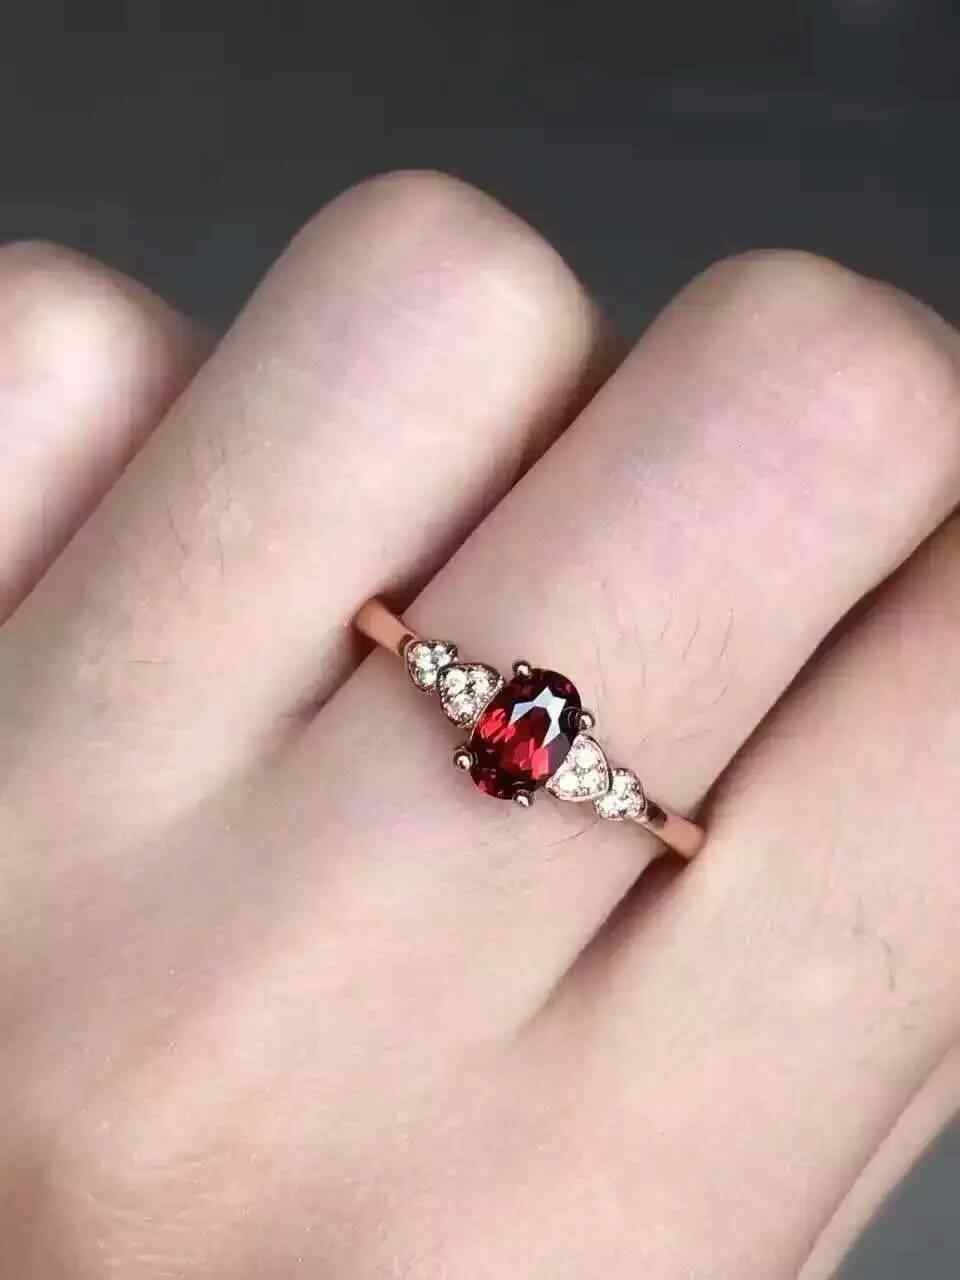 64e8296cc8 Natural red garnet Ring Natural gemstone Ring S925 sterling silver trendy  Elegant Heart women's girl wedding